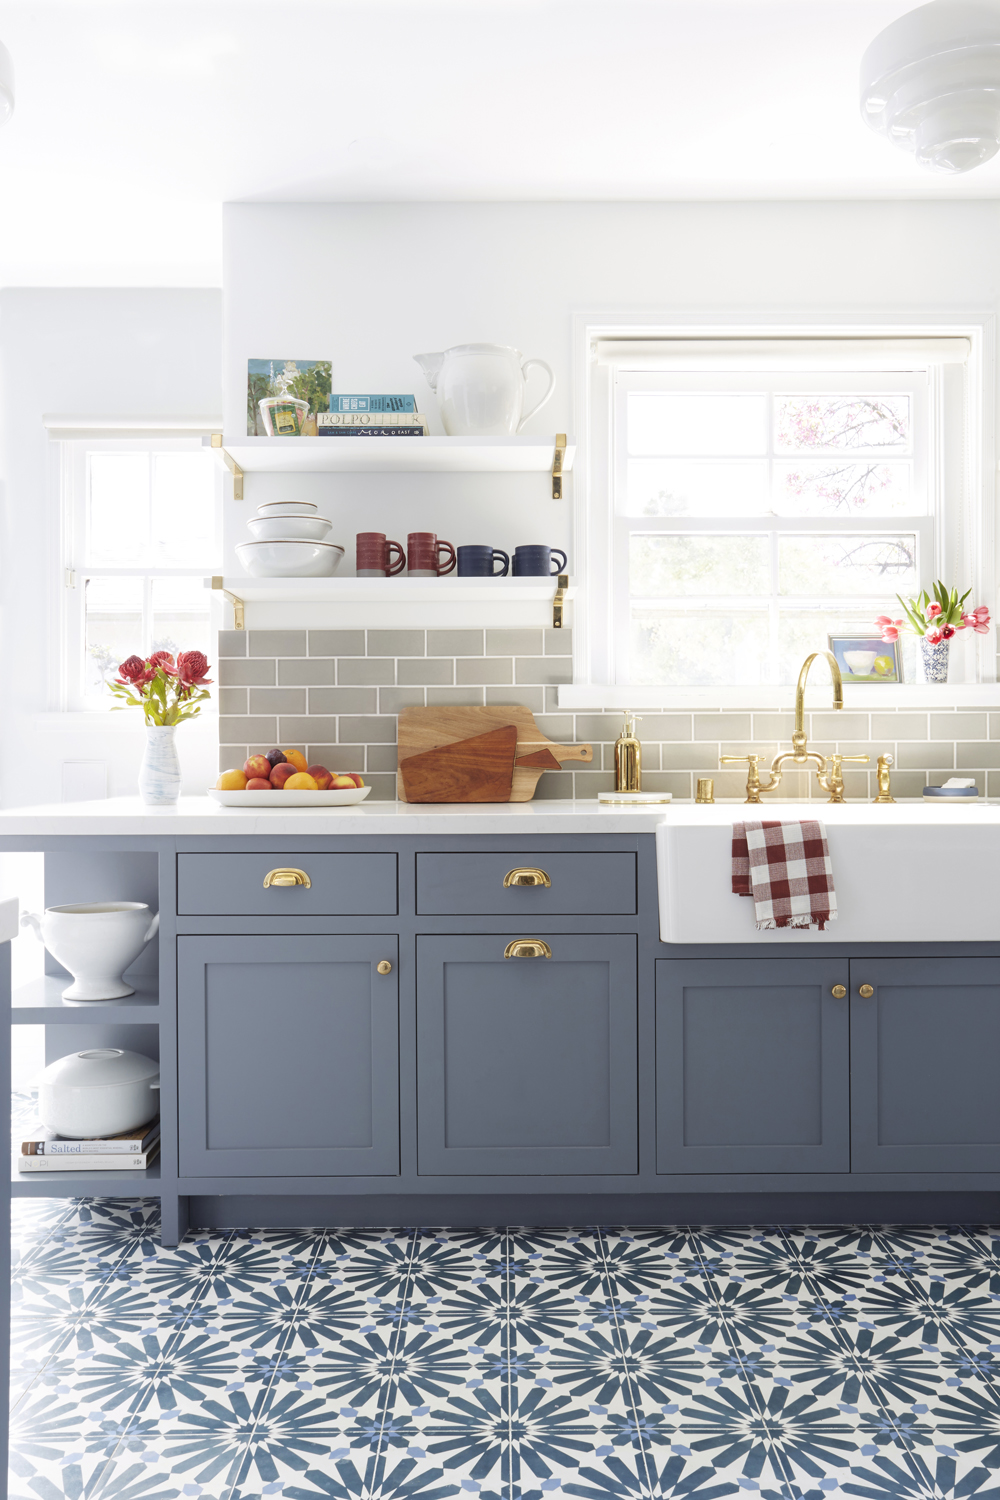 Beautiful medium blue kitchen cabinets and blue cement tile flooring. Come see 36 Best Beautiful Blue and White Kitchens to Love! #blueandwhite #bluekitchen #kitchendesign #kitchendecor #decorinspiration #modernfarmhousekitchen